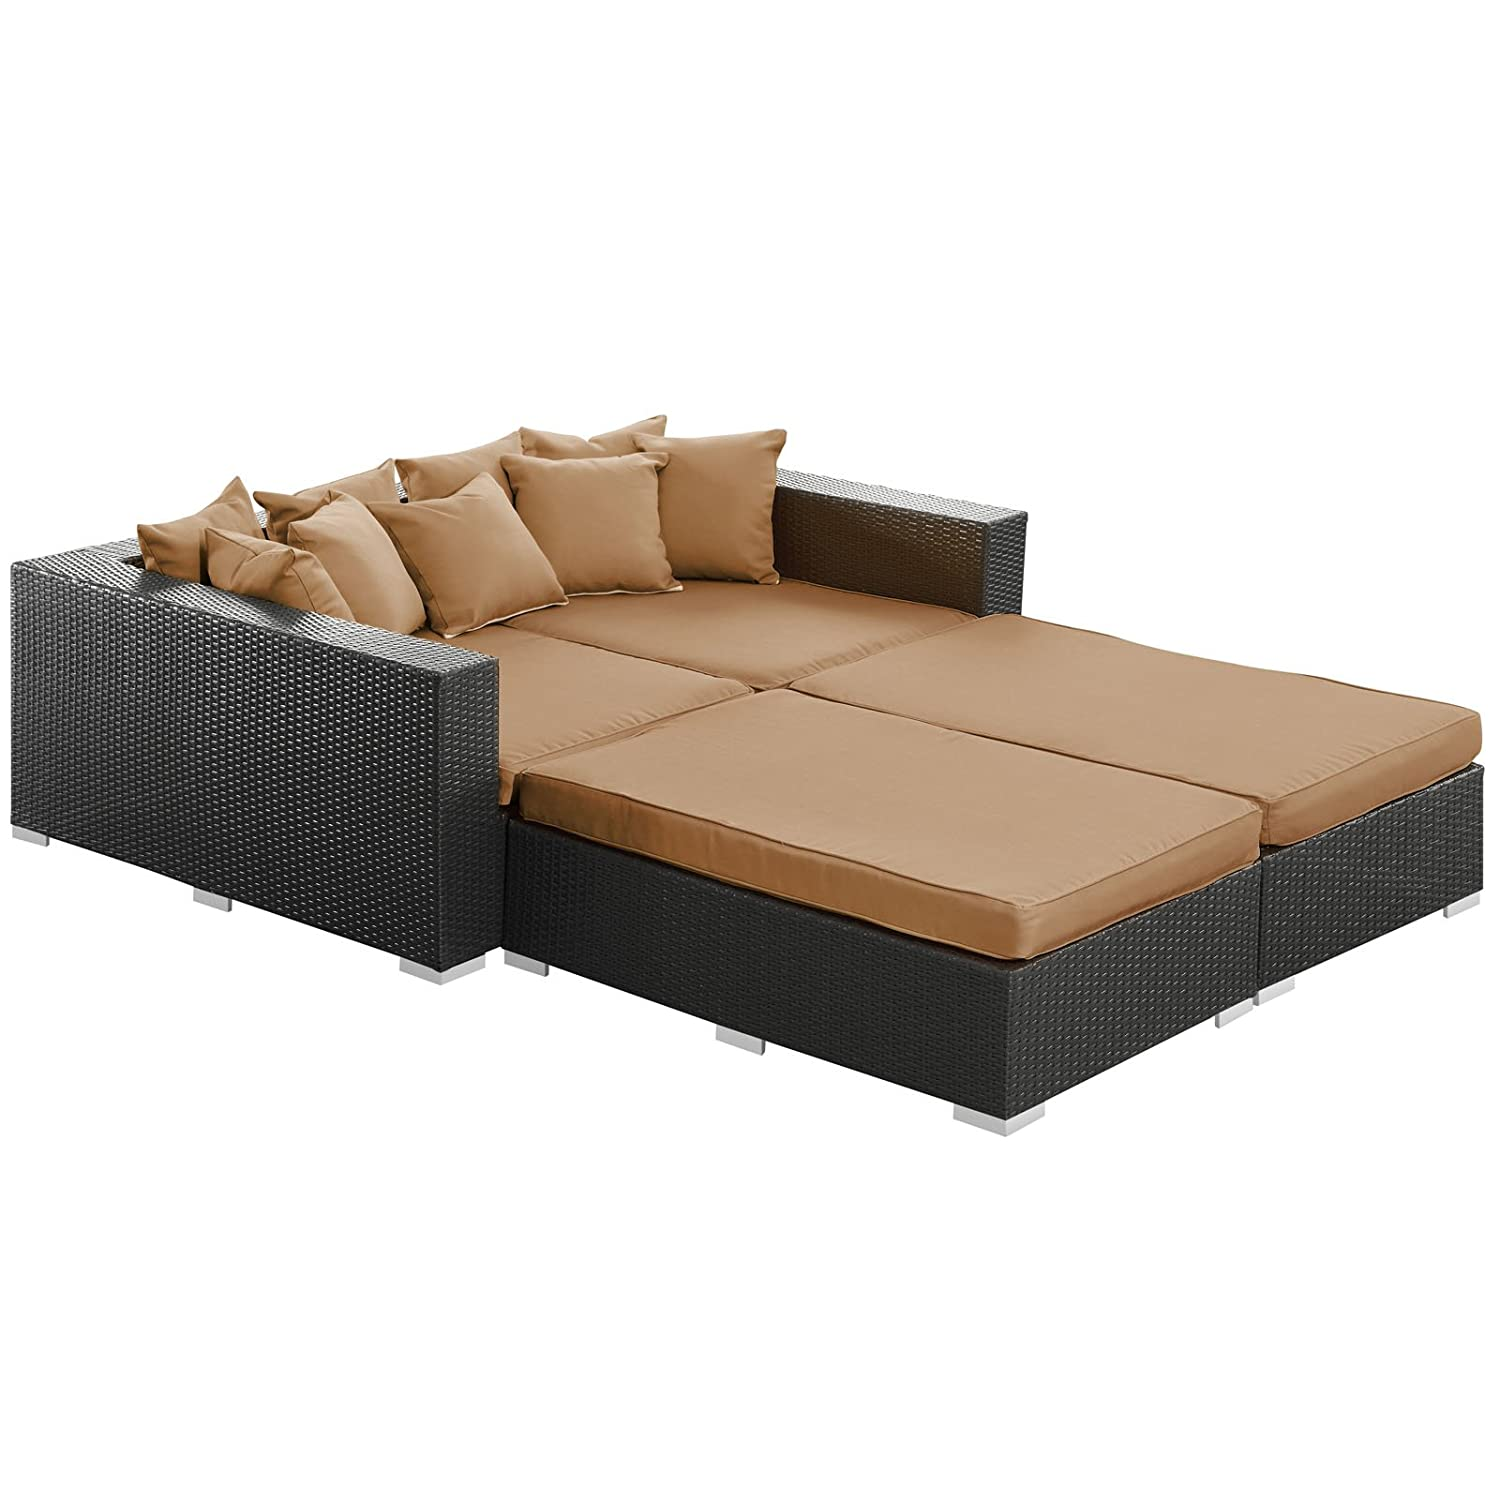 Amazon.com : Modway Palisades Outdoor Wicker Patio Daybed 4 Piece Set In  Espresso With Mocha Cushions : Outdoor And Patio Furniture Sets : Garden U0026  Outdoor